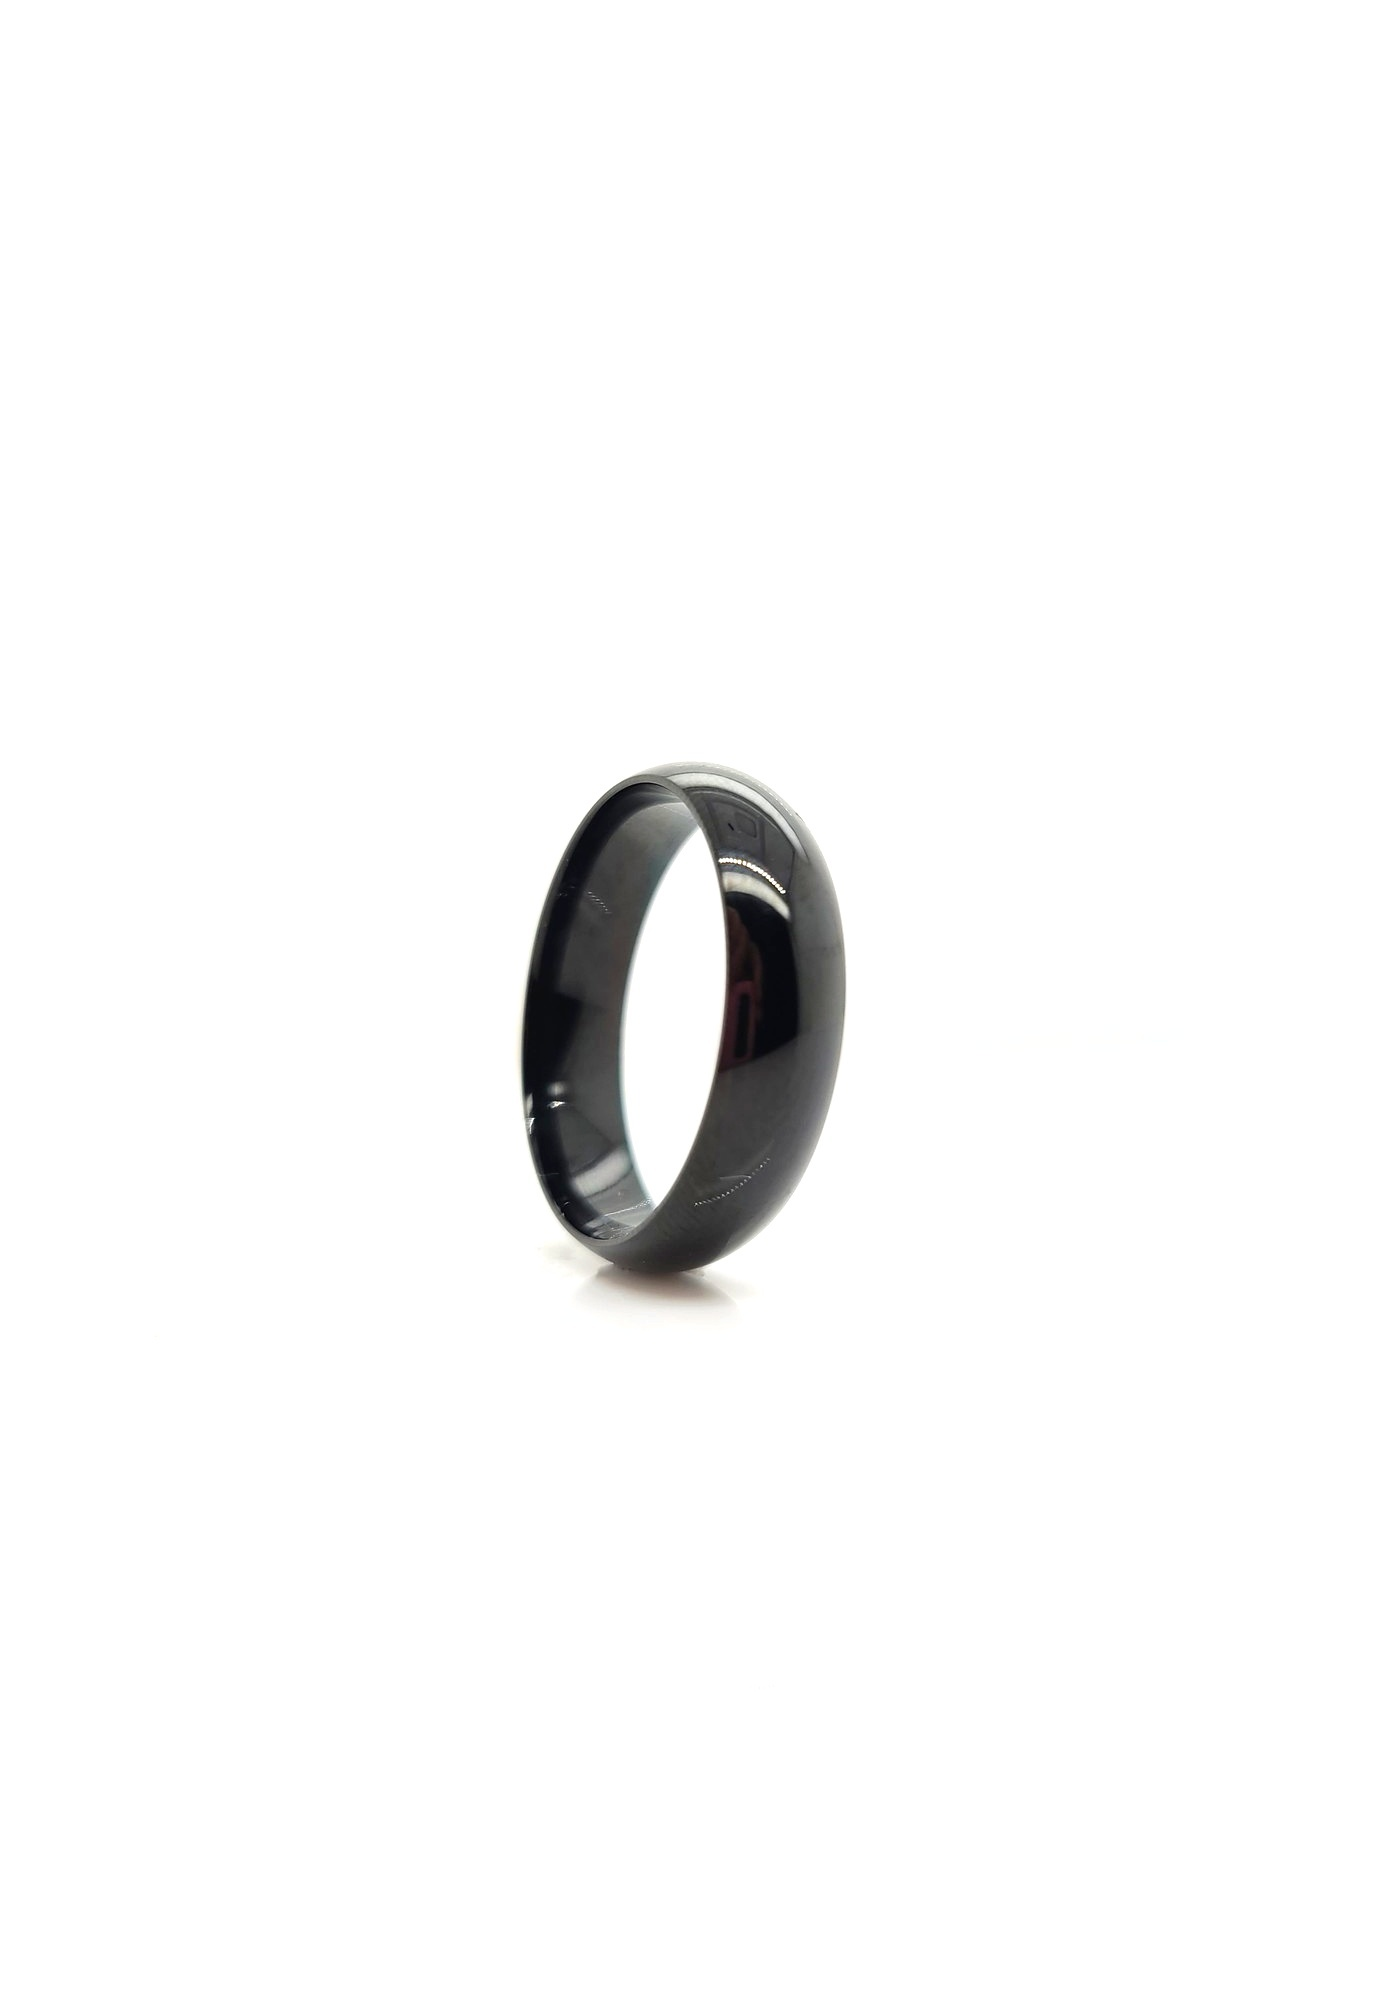 Tungsten Carbide black half round, sz 10.75, 5.8mm